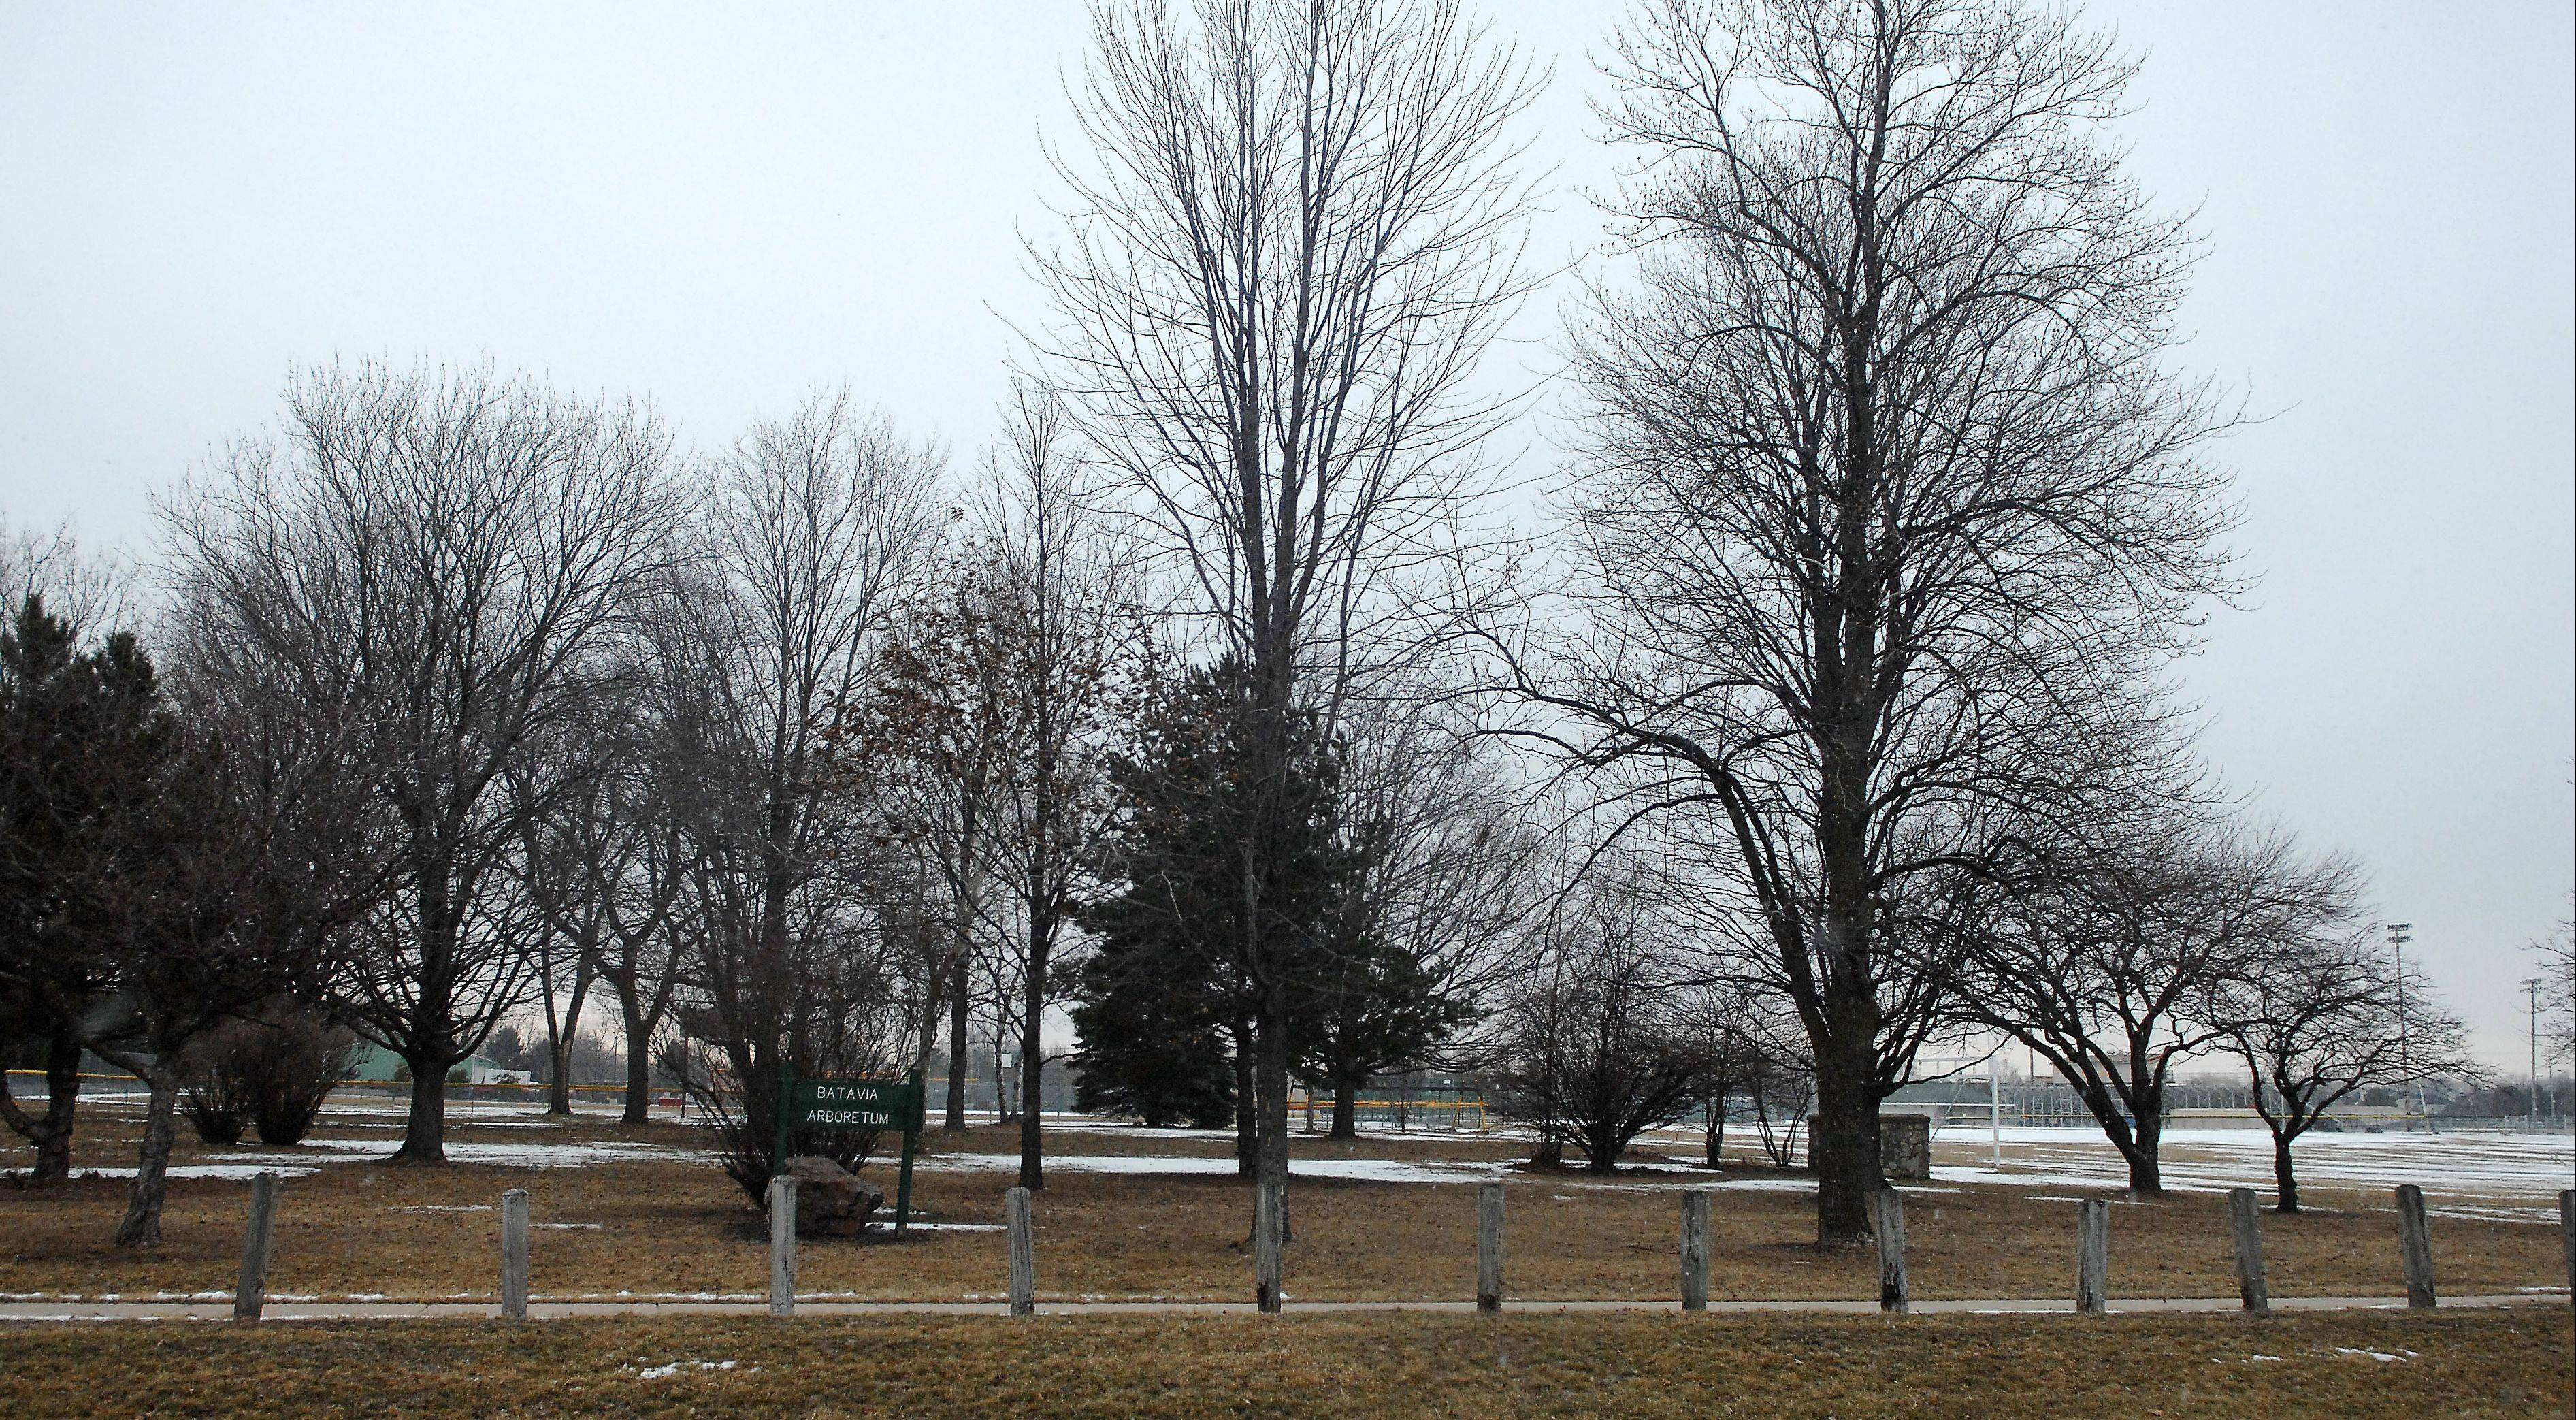 Possible updates to the Batavia High School athletic fields may result in the school's arboretum being cut down. Some were gifts when the school opened in the mid-1960s. New plantings throughout the campus could be rededicated, according to Patrick Browne, the school district's building and grounds director.